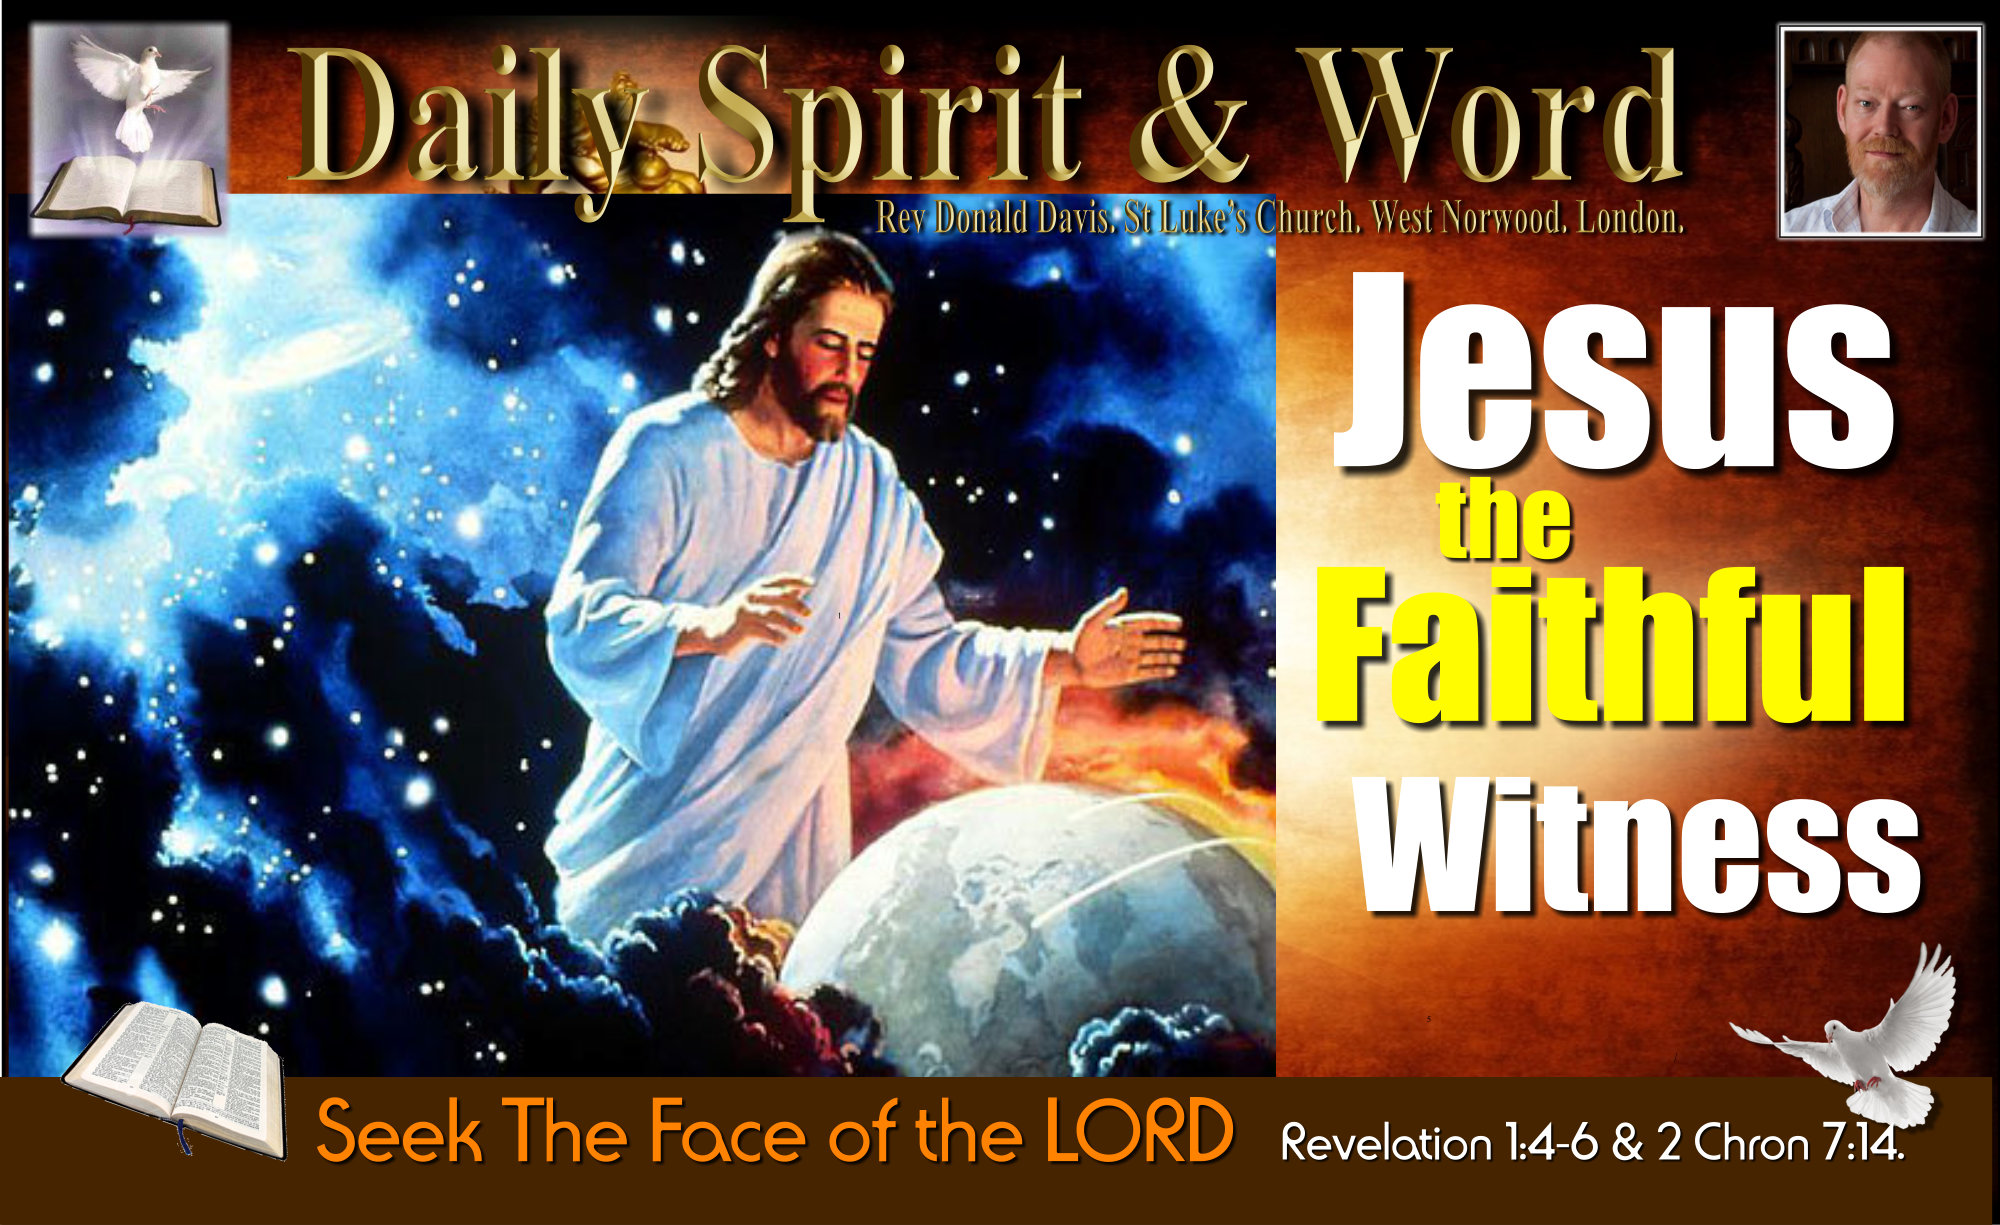 Being a faithful witness for Jesus